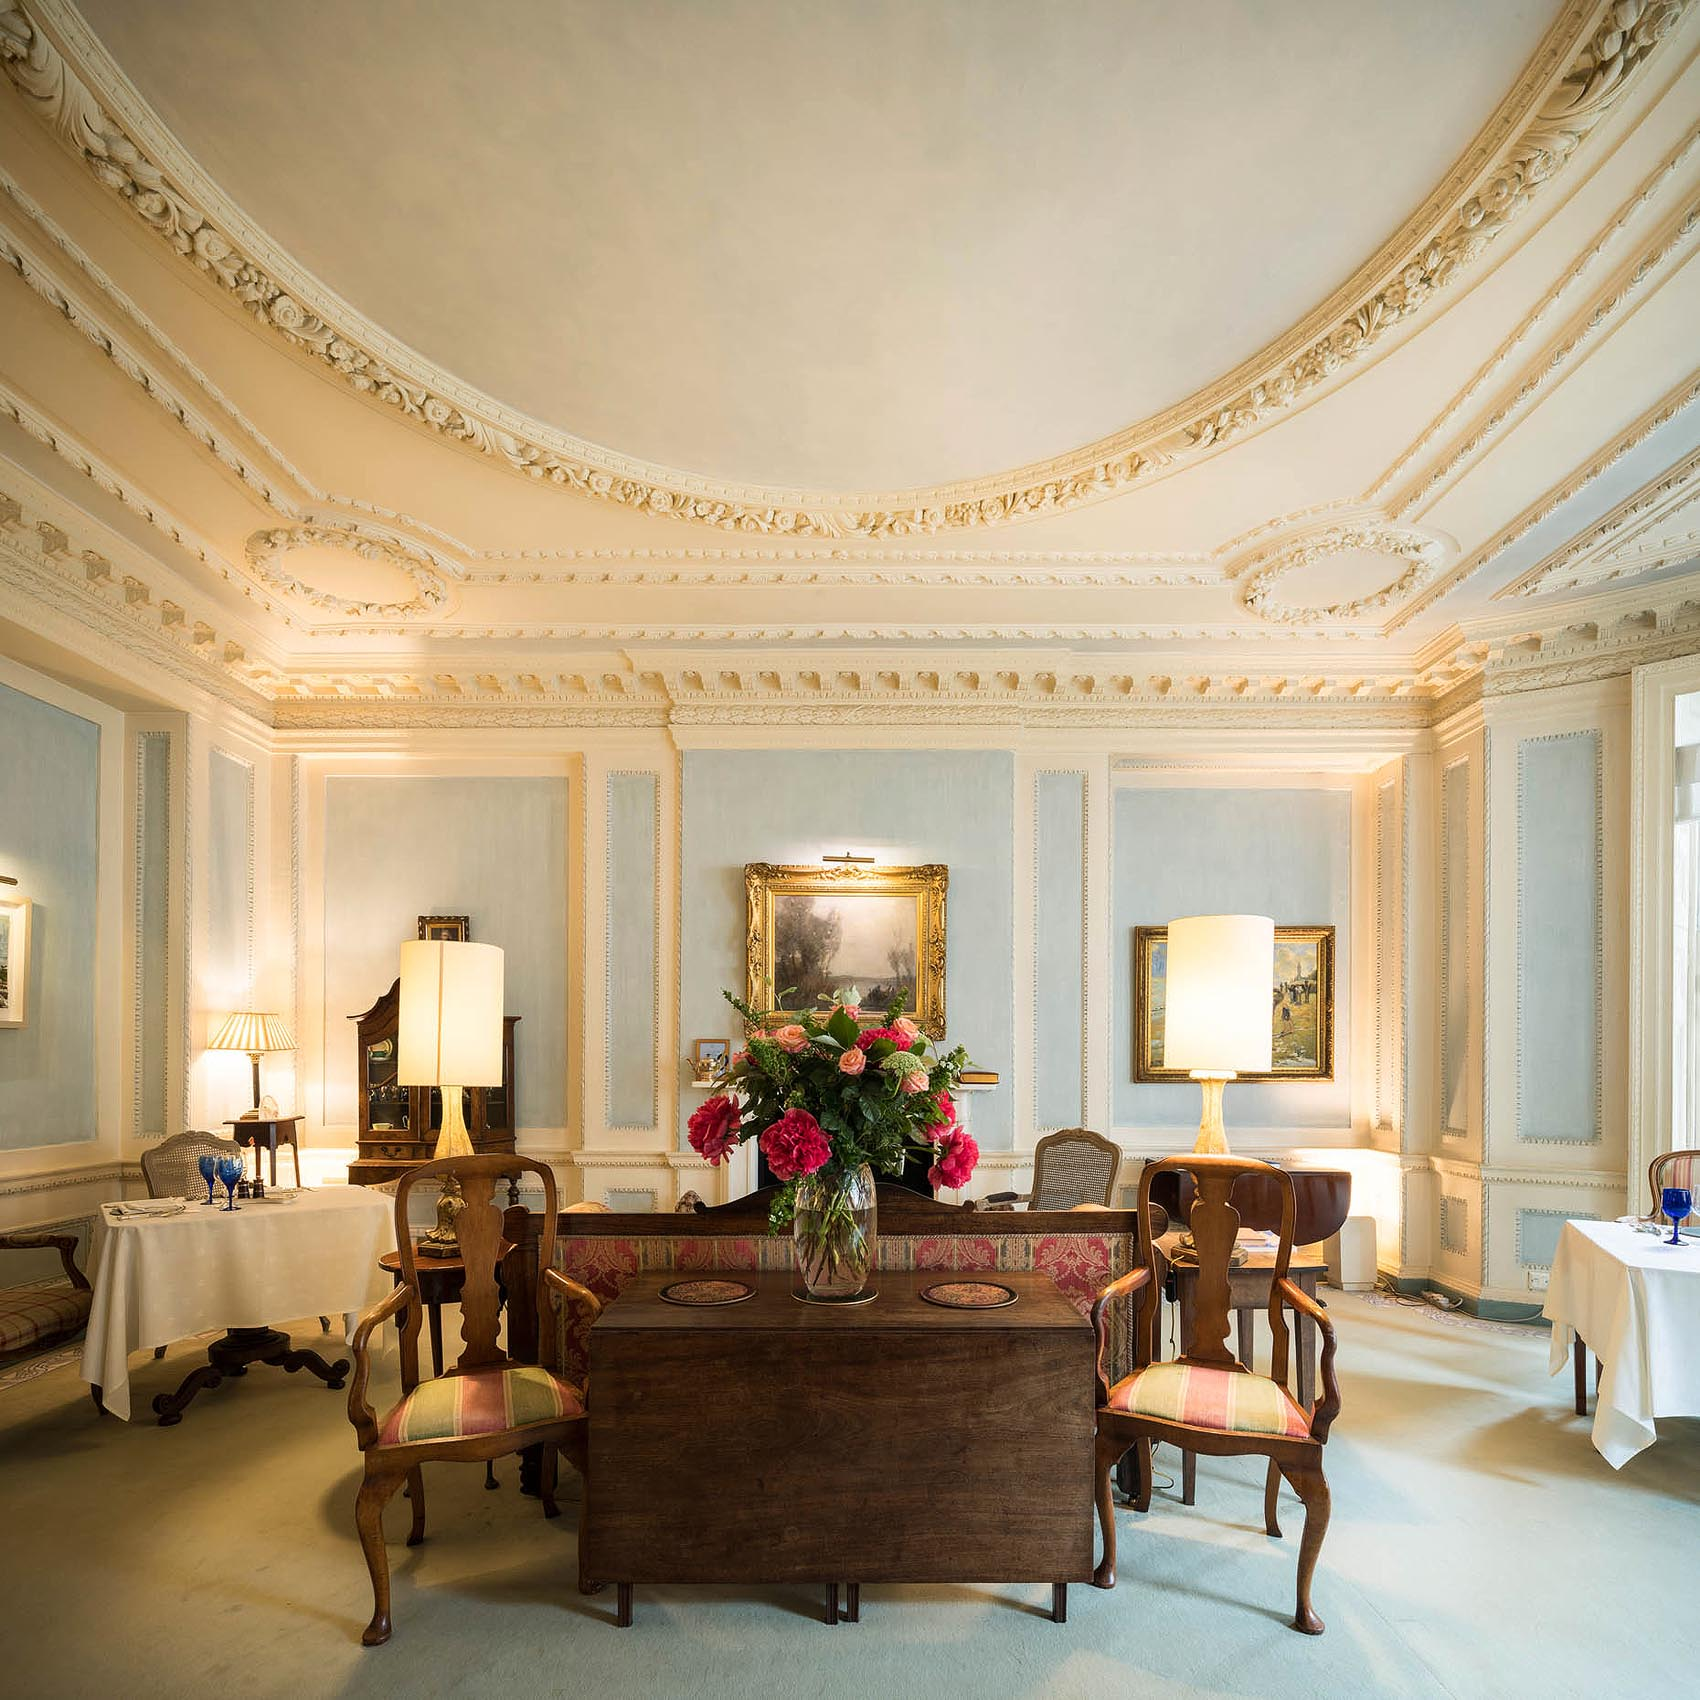 interior-photographer-belgravia-london-traditional